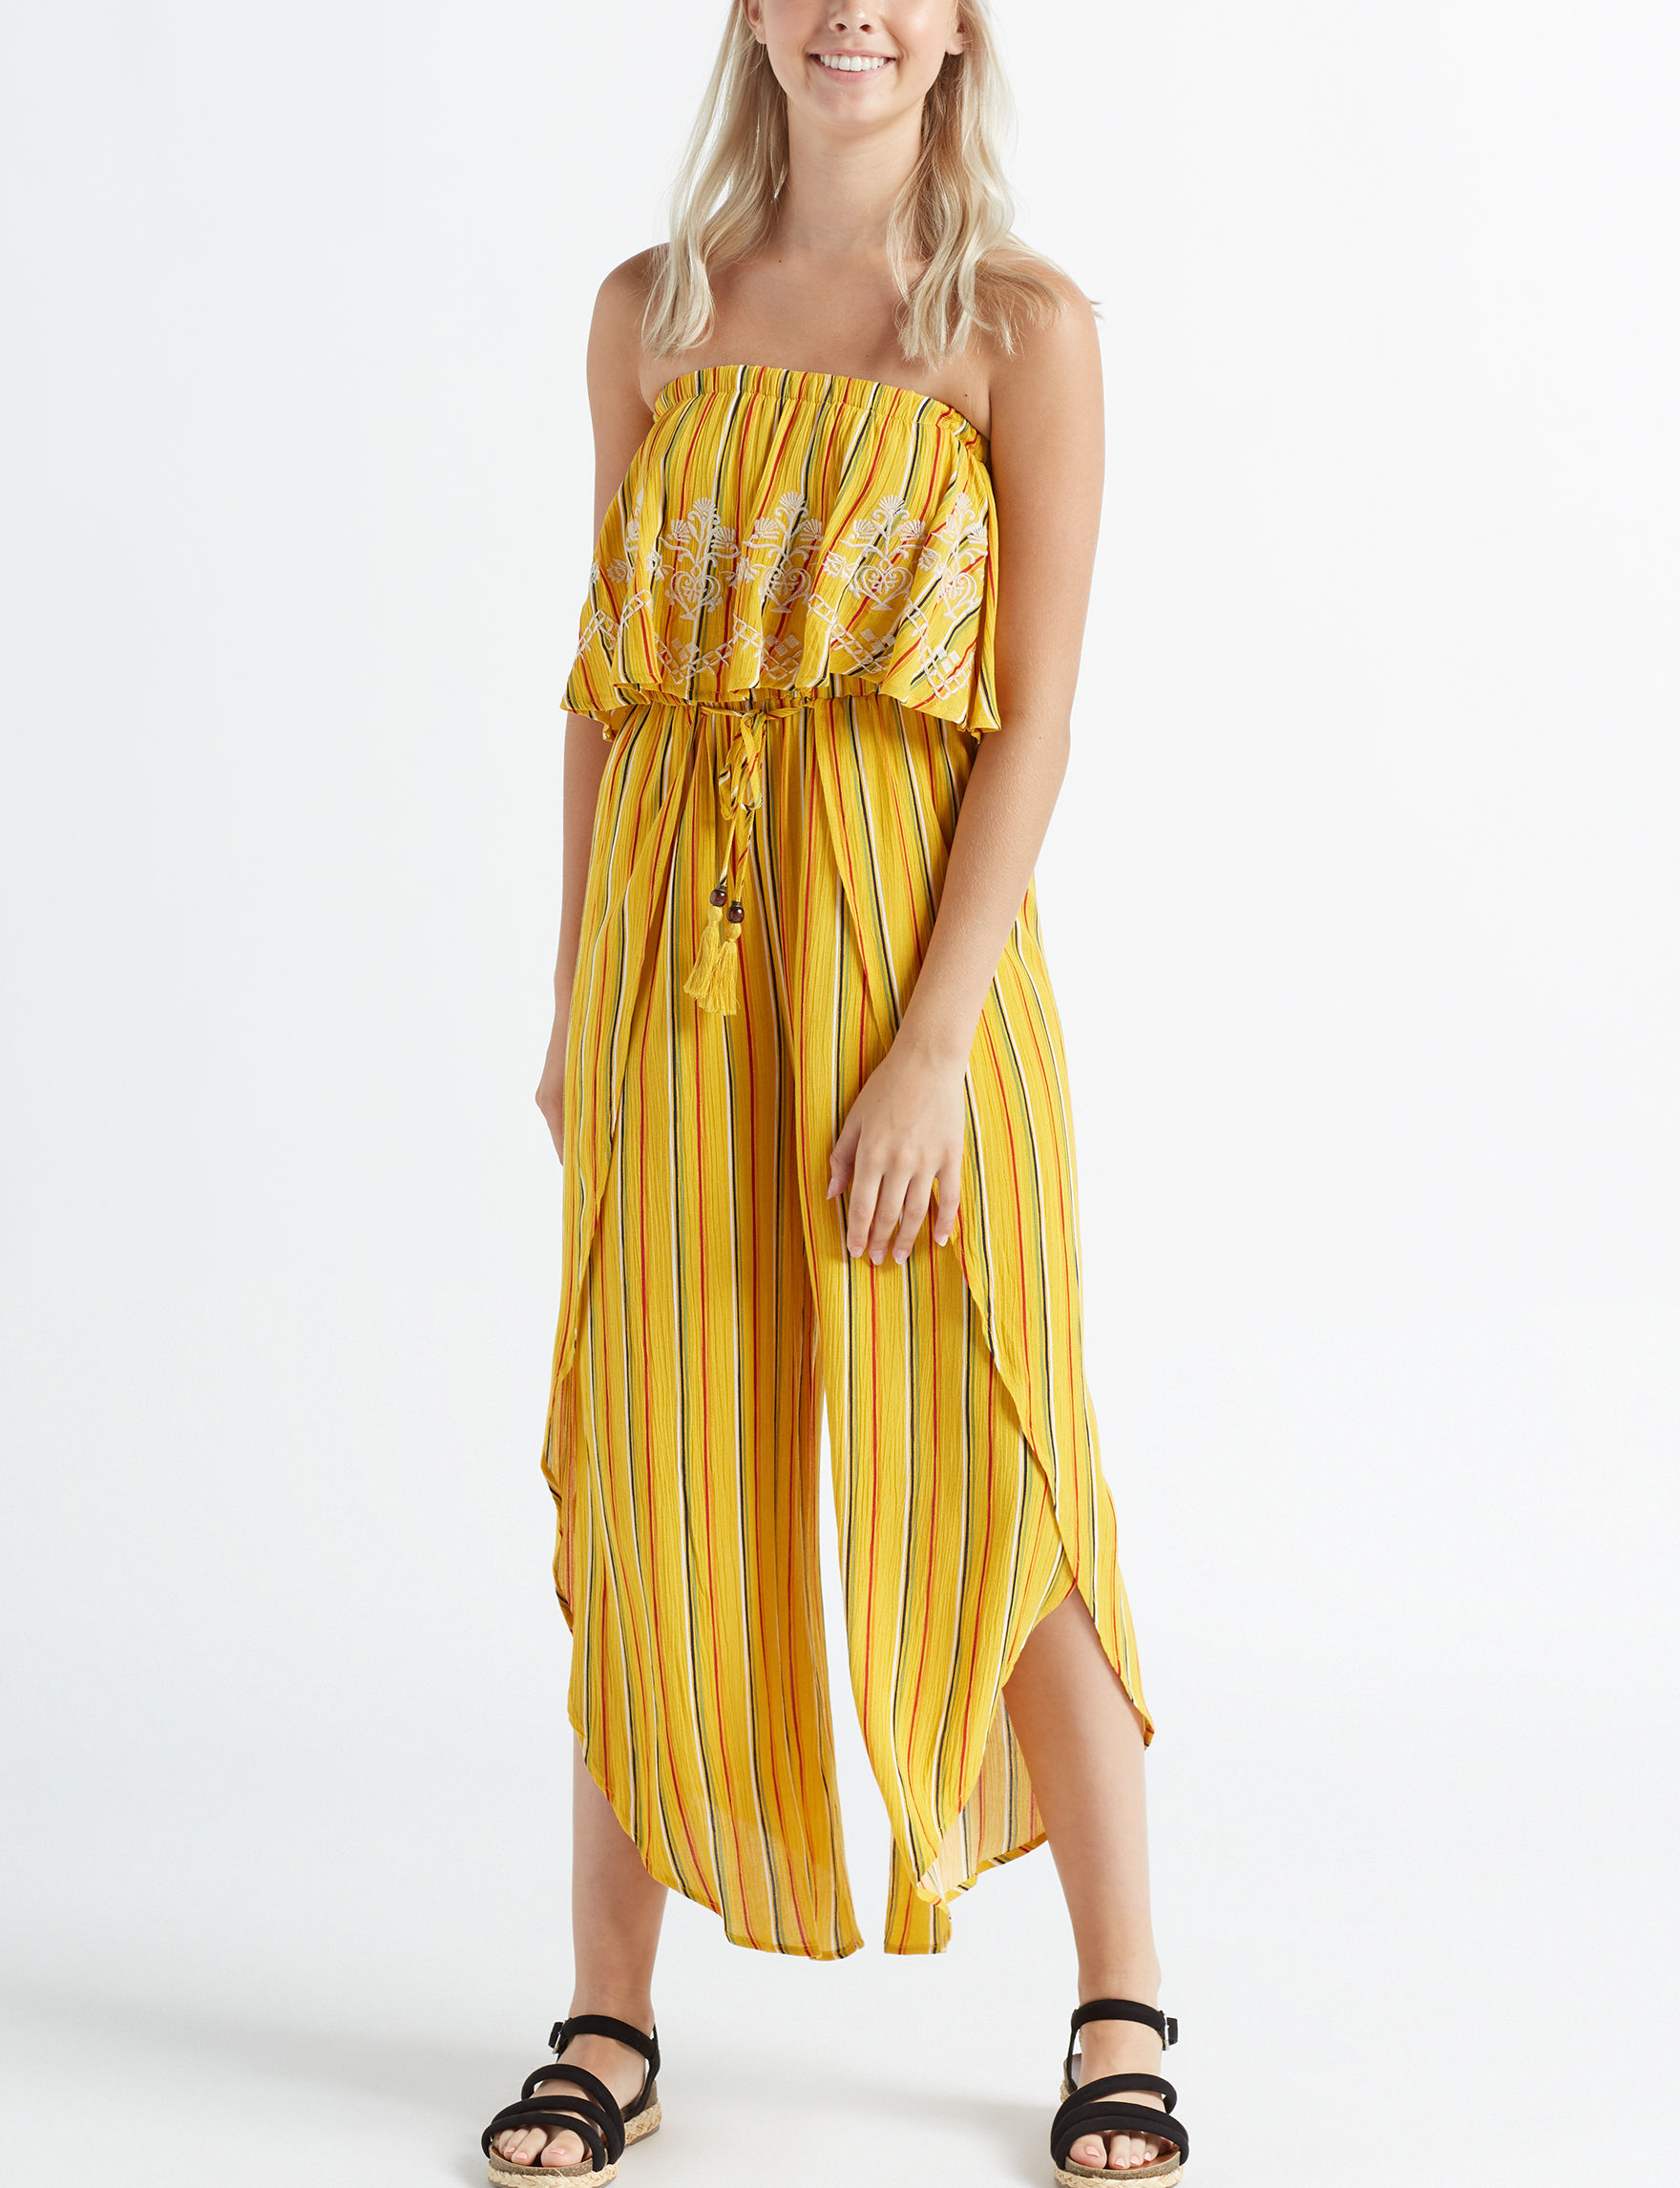 Taylor & Sage Mustard Multi Everyday & Casual Strapless